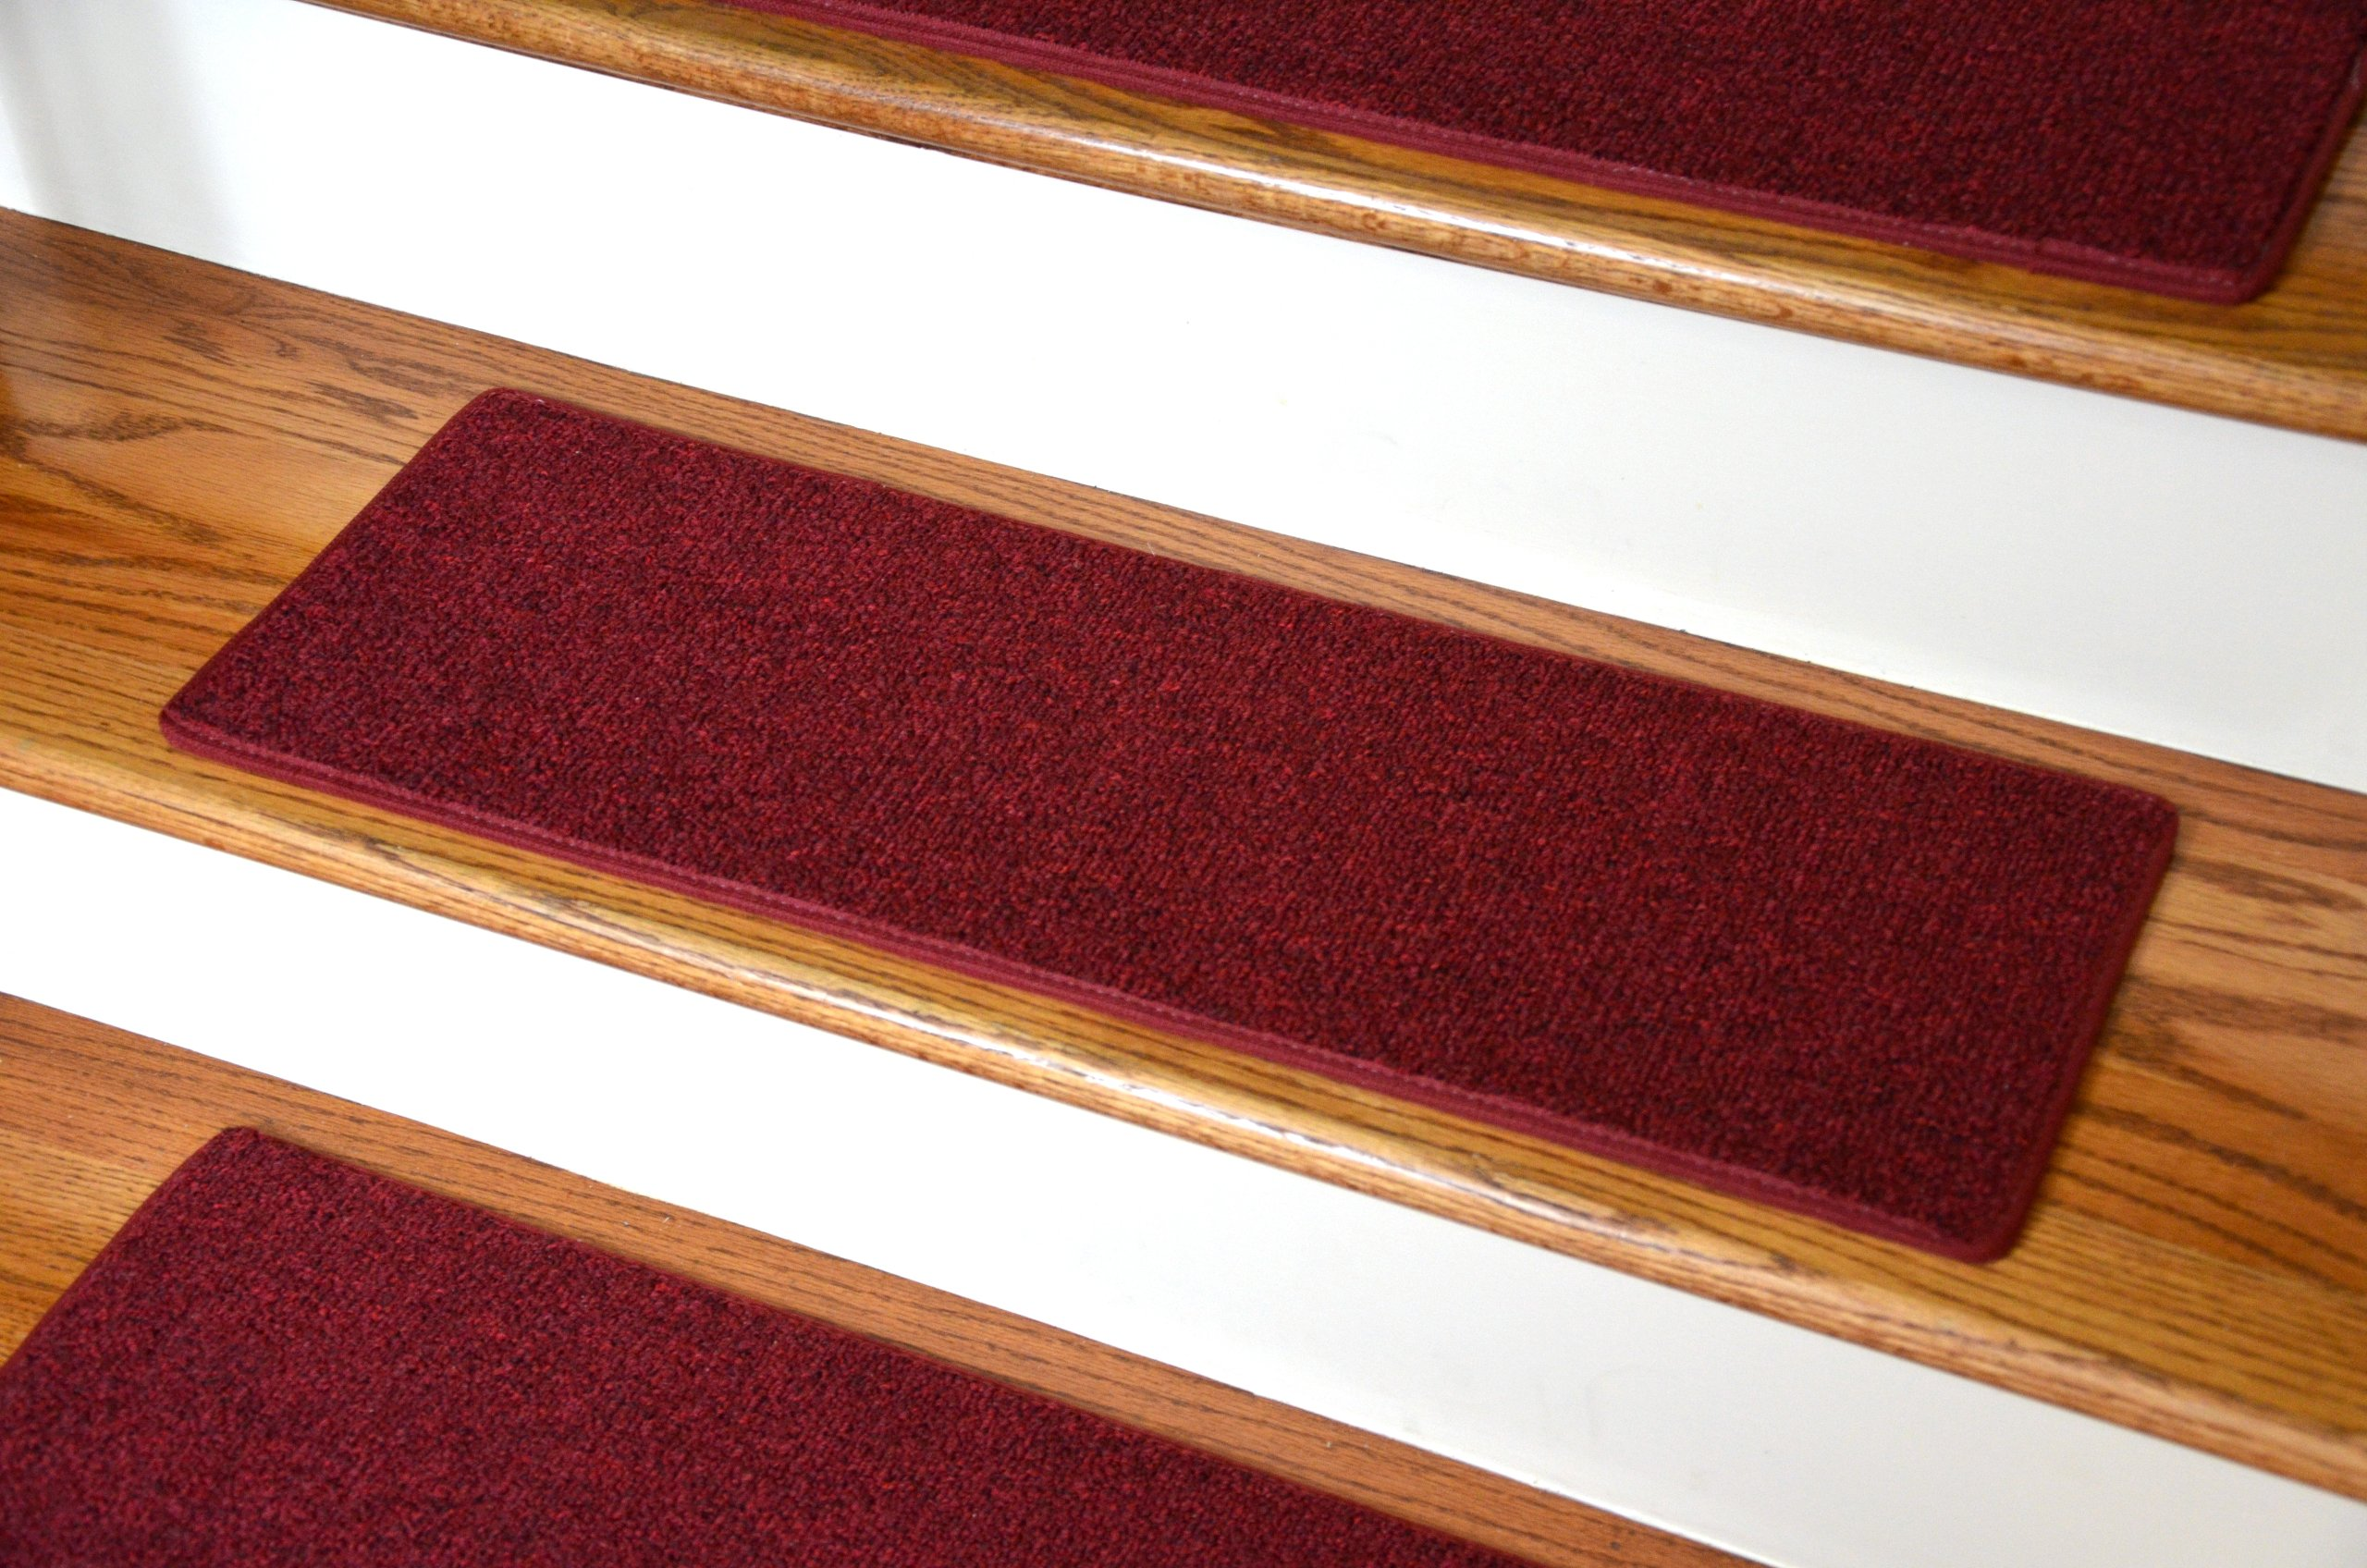 Dean Non-Slip Tape Free Pet Friendly DIY Carpet Stair Treads/Rugs 27'' x 9'' (15) - Color: Red